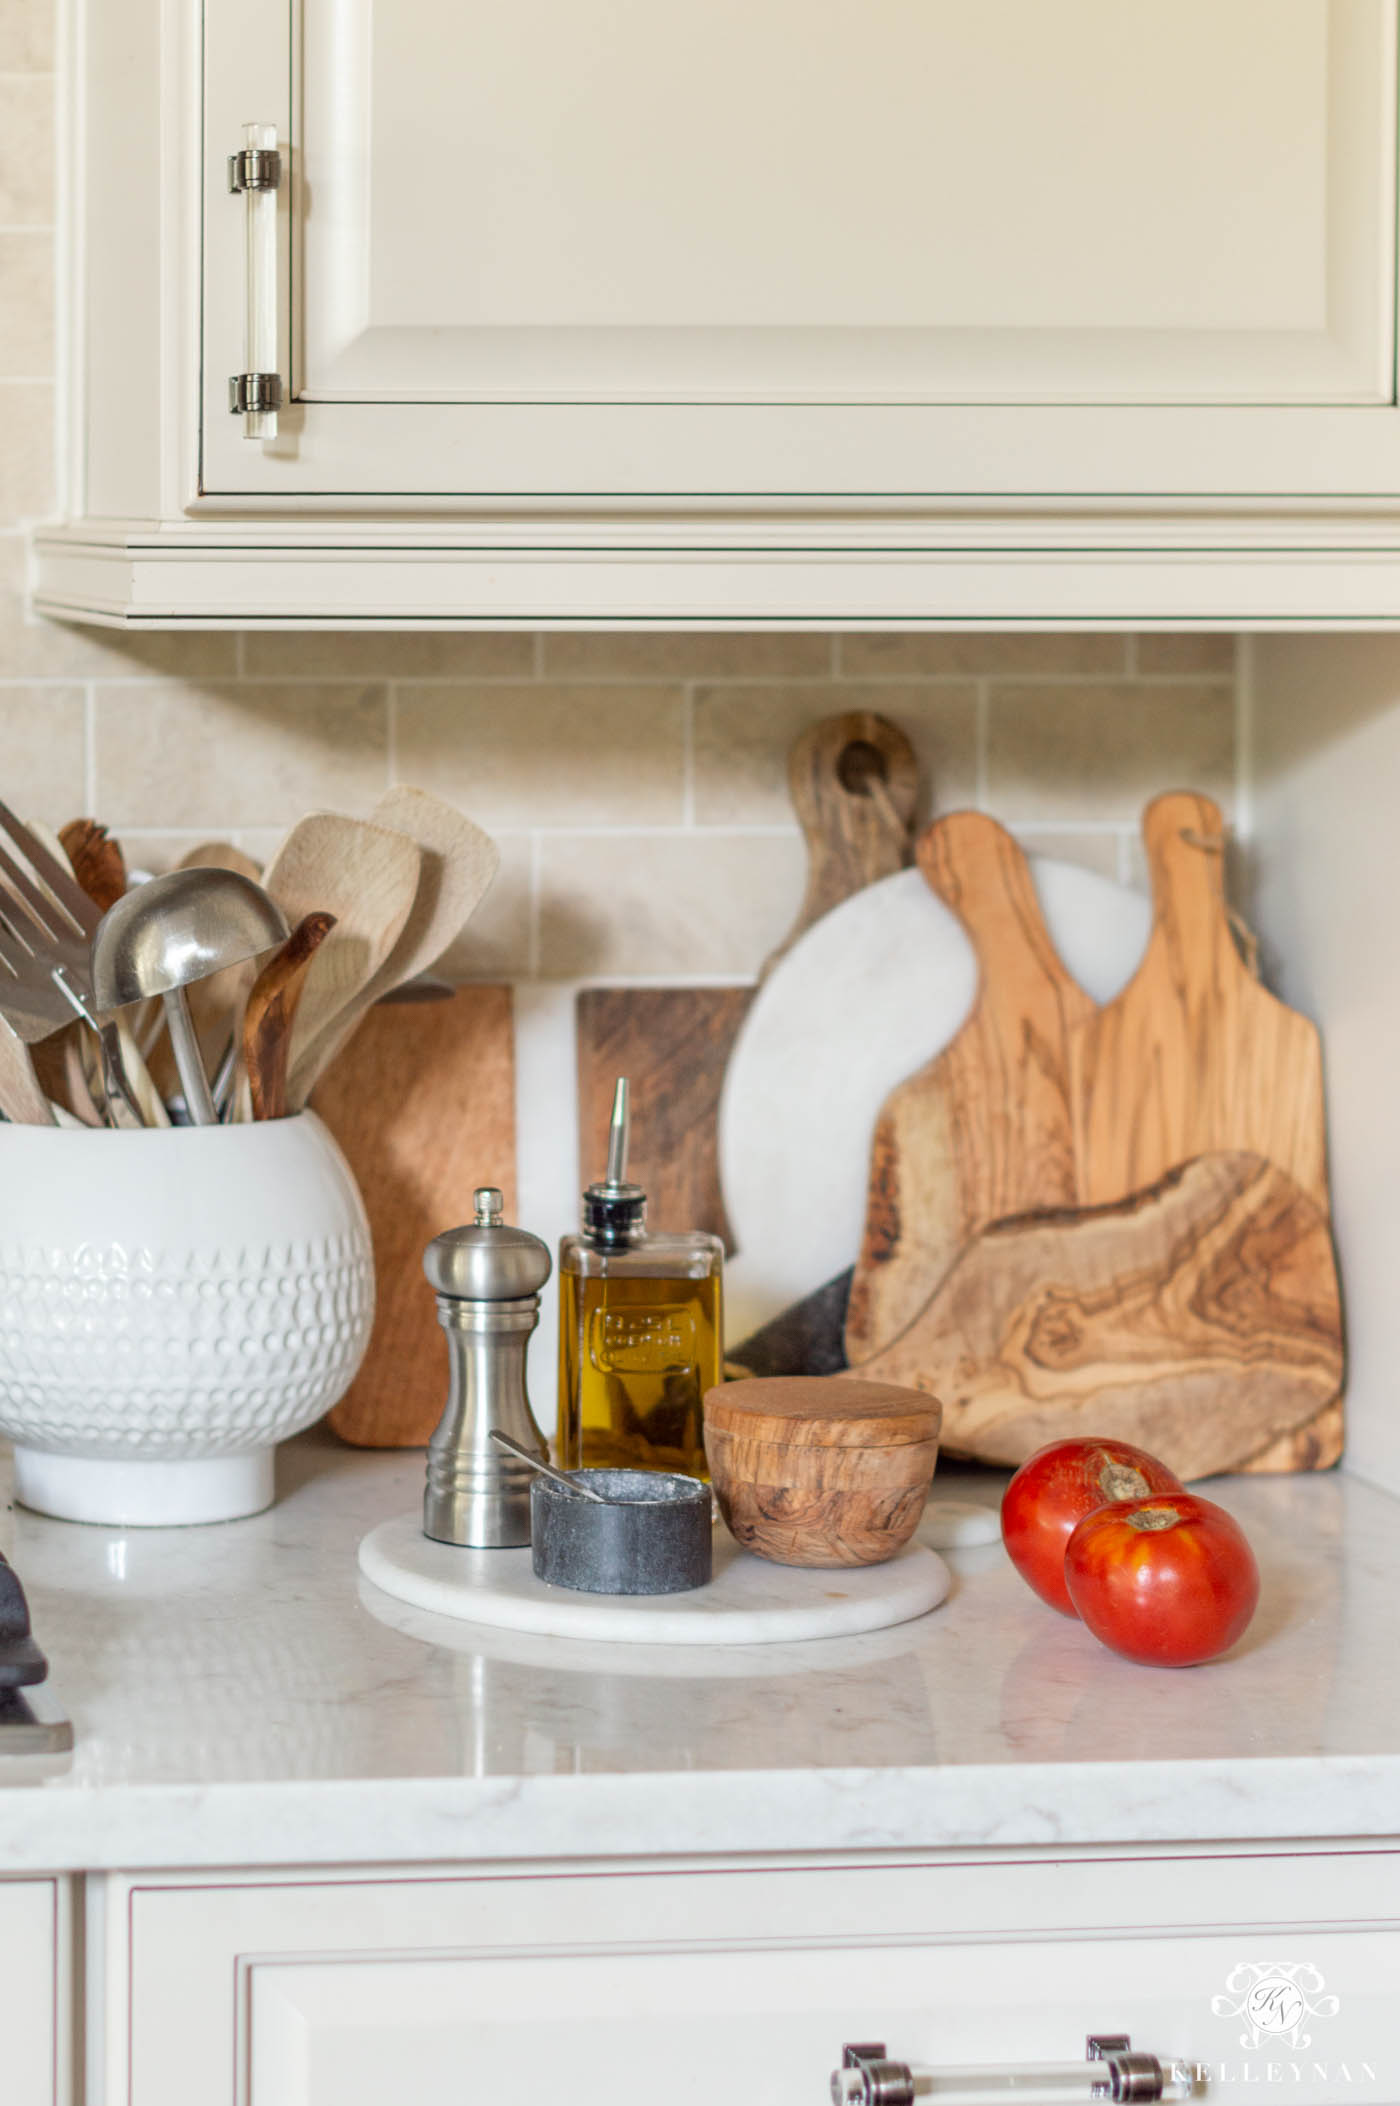 Favorite Gadgets and Accessories for the Kitchen